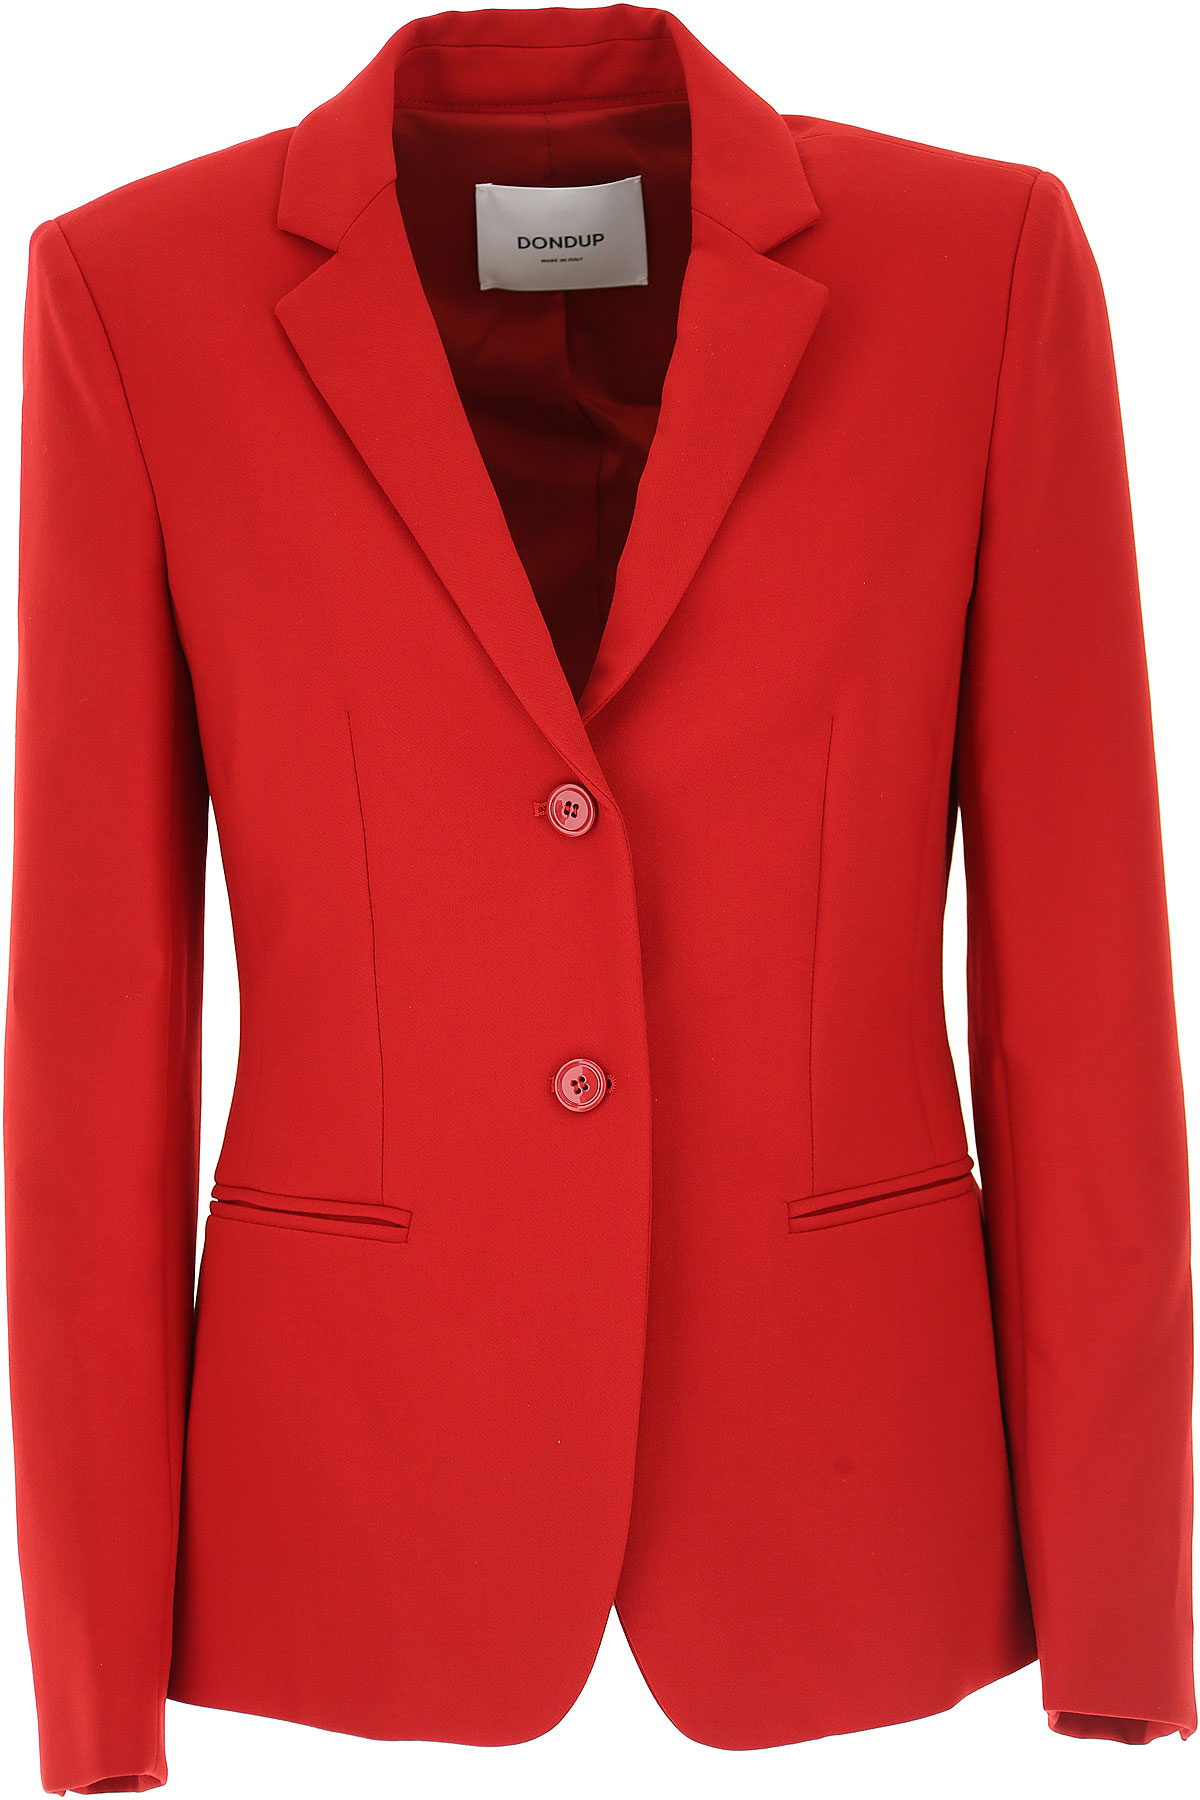 Image of Dondup Blazer for Women, Red, polyester, 2017, 6 8